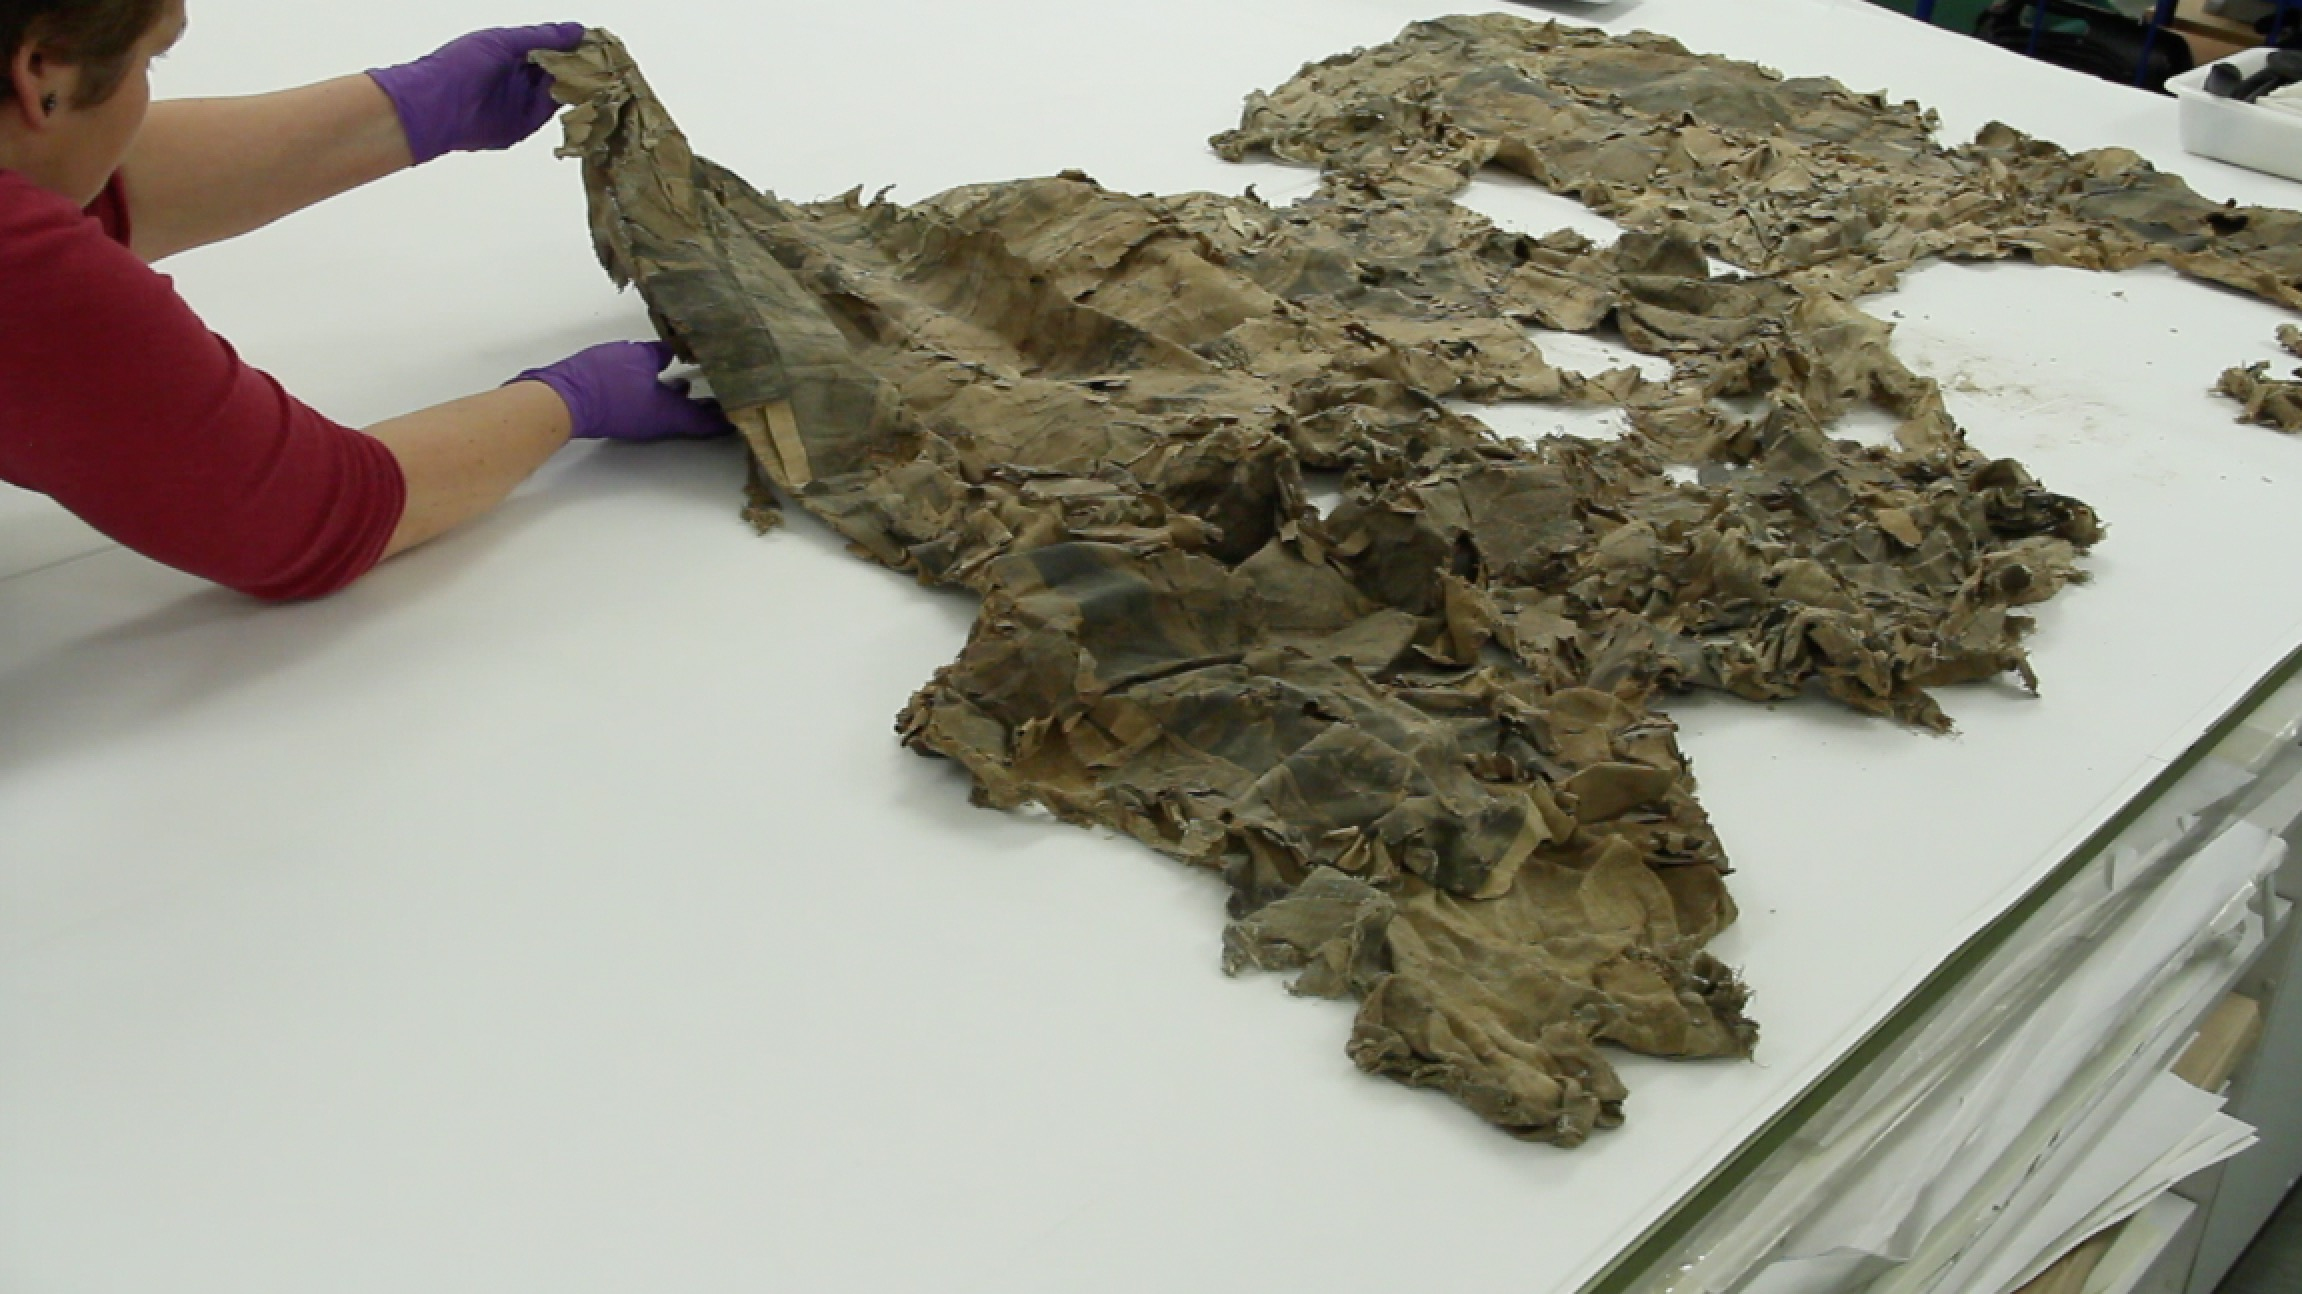 The rare 17th-century map of the world was found stuffed up a chimney.